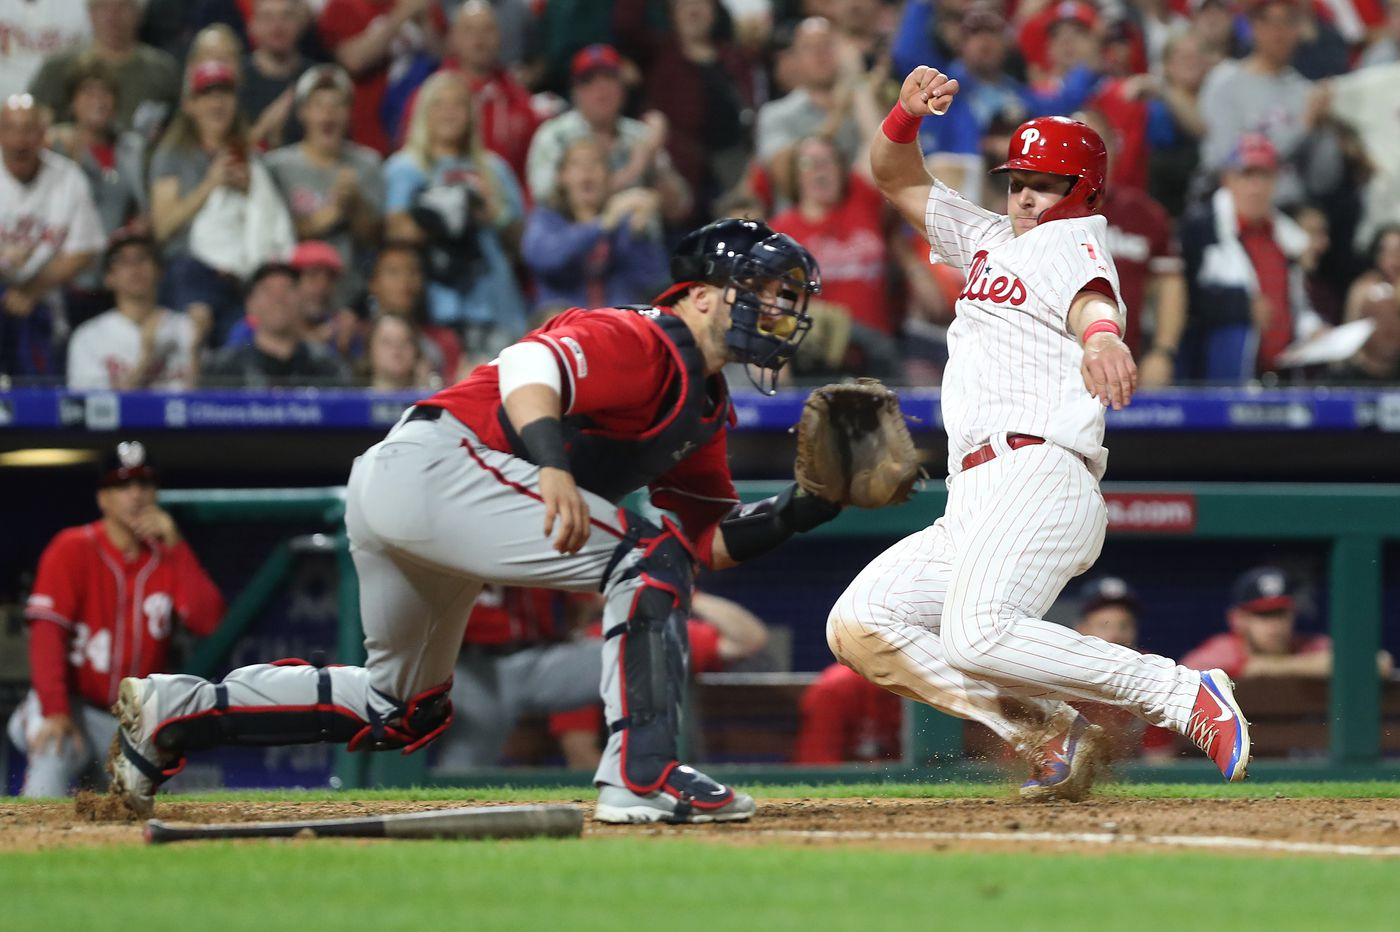 We'll know where the Phillies stand after facing the Nationals, Dodgers and Pirates | Extra Innings